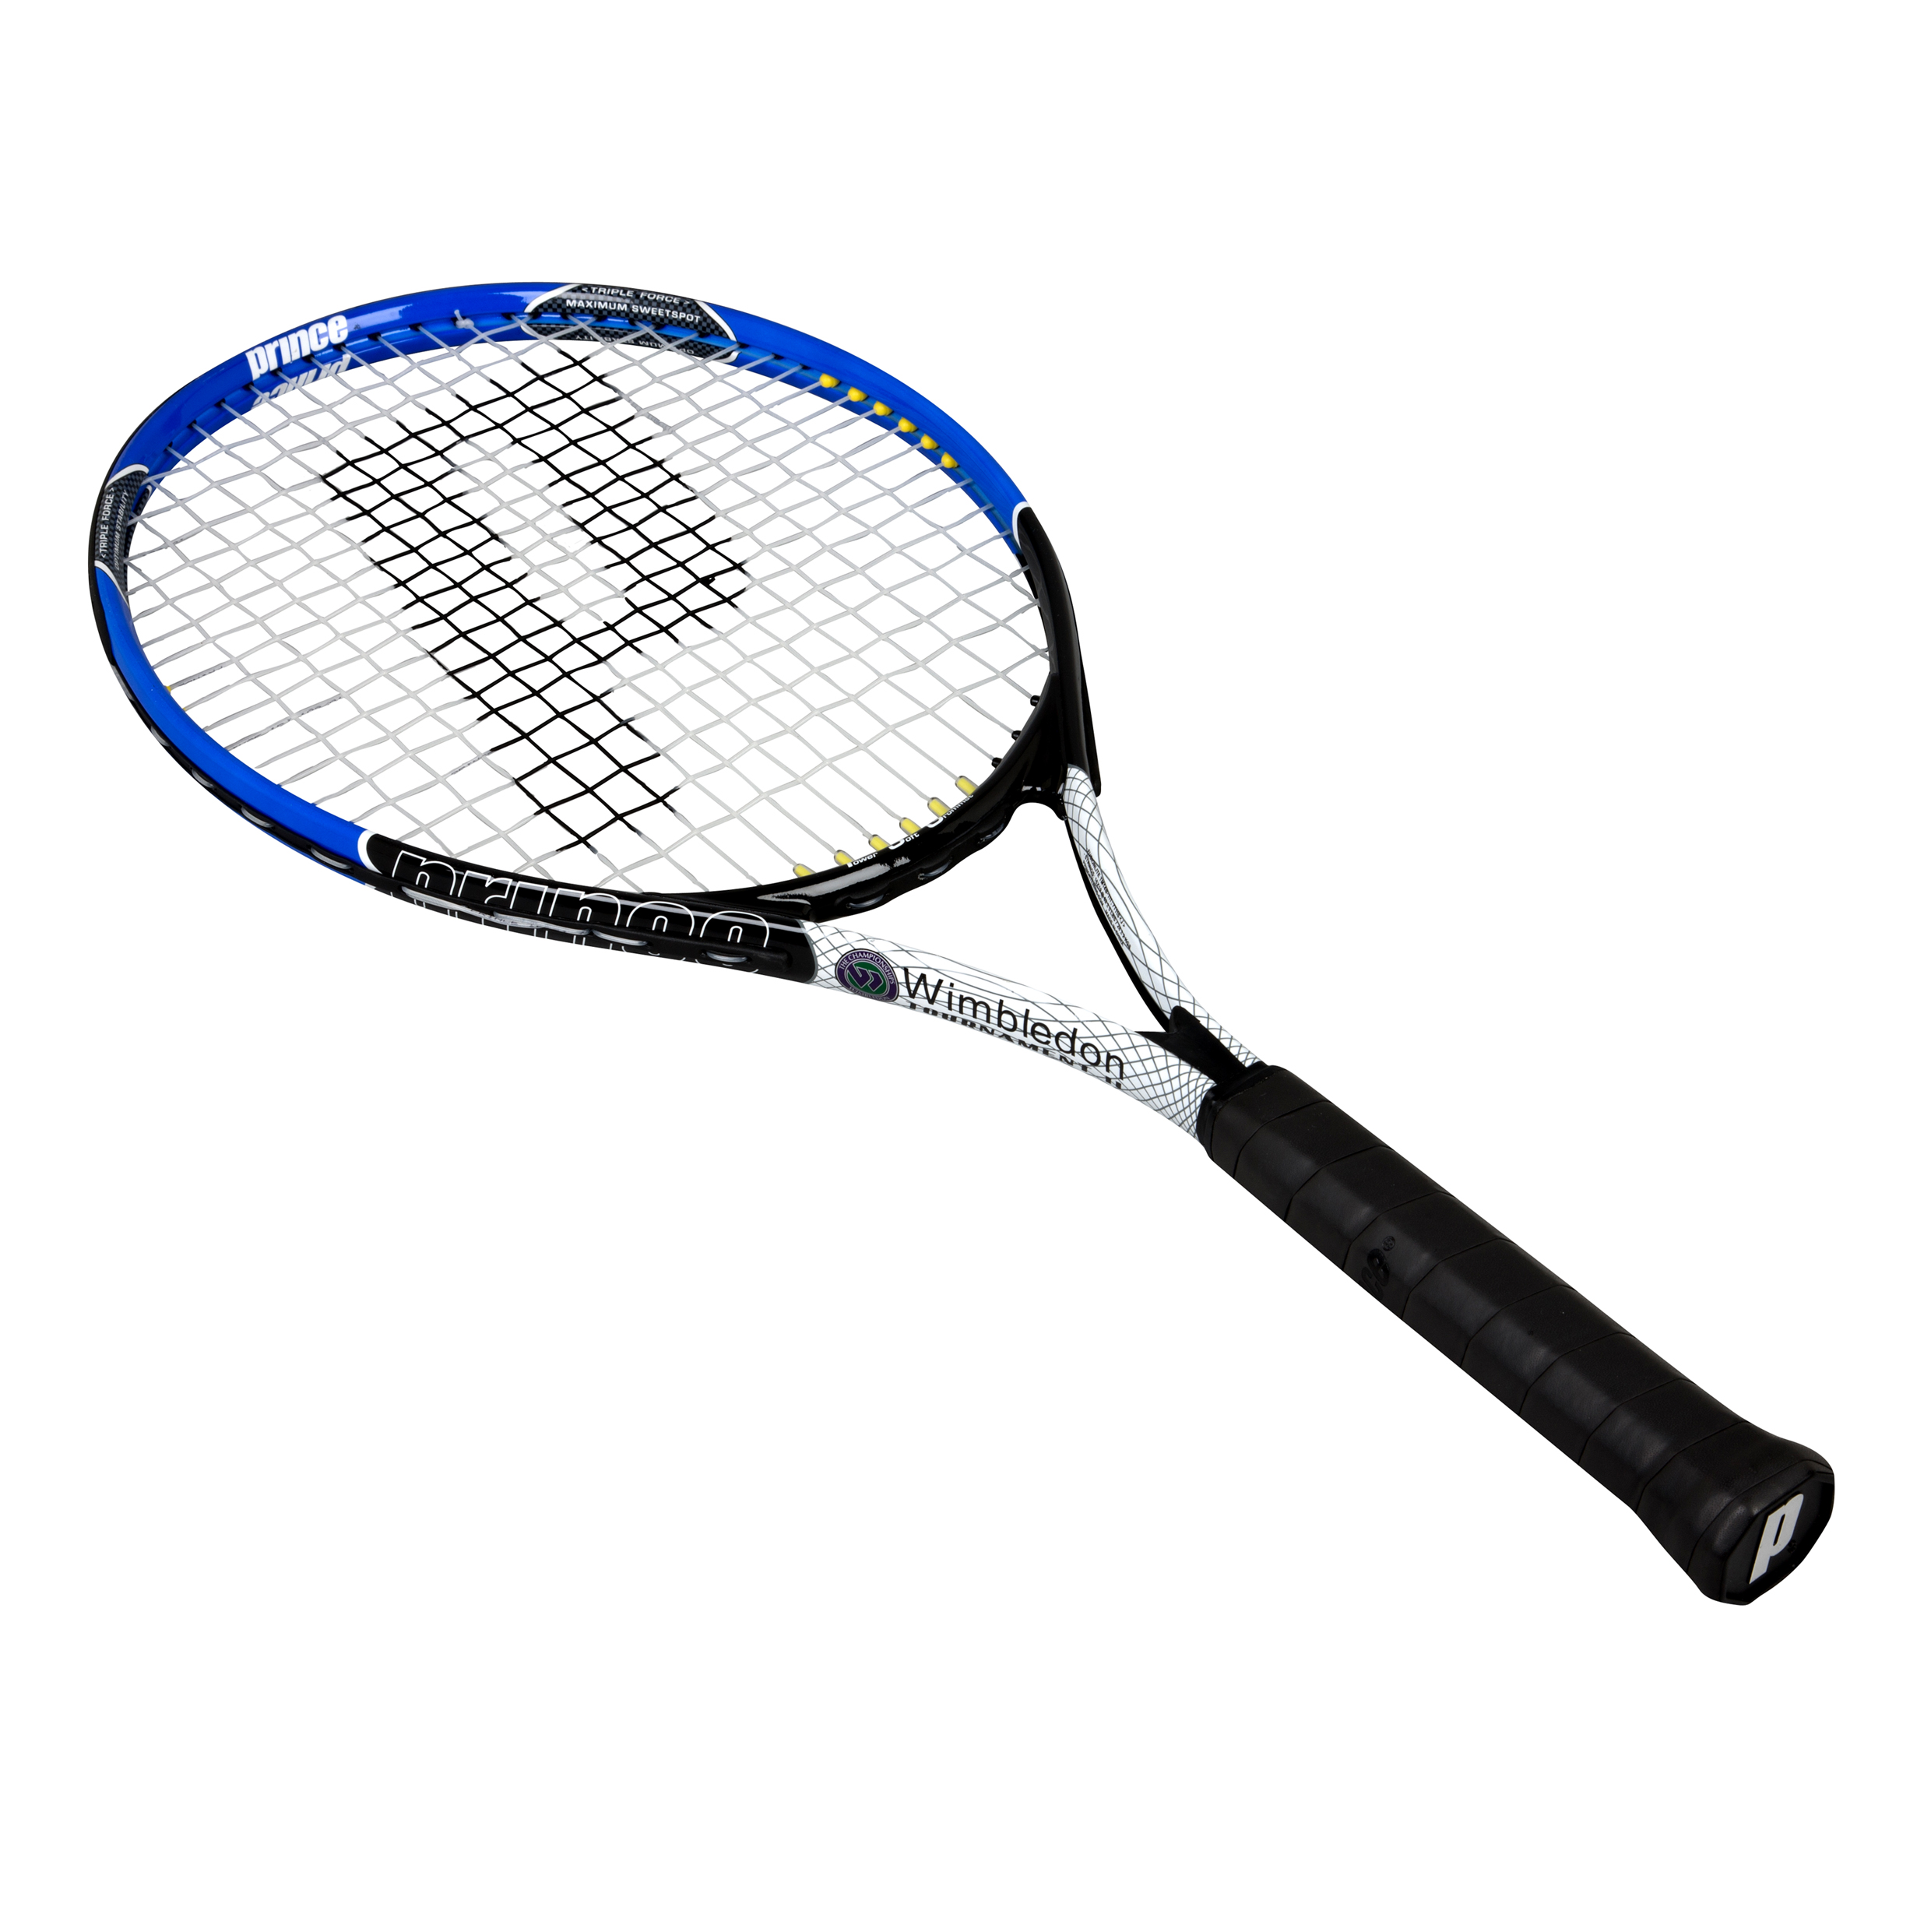 Wimbledon By Prince Wimbledon Tournament Tennis Racket - Blue/White/Black